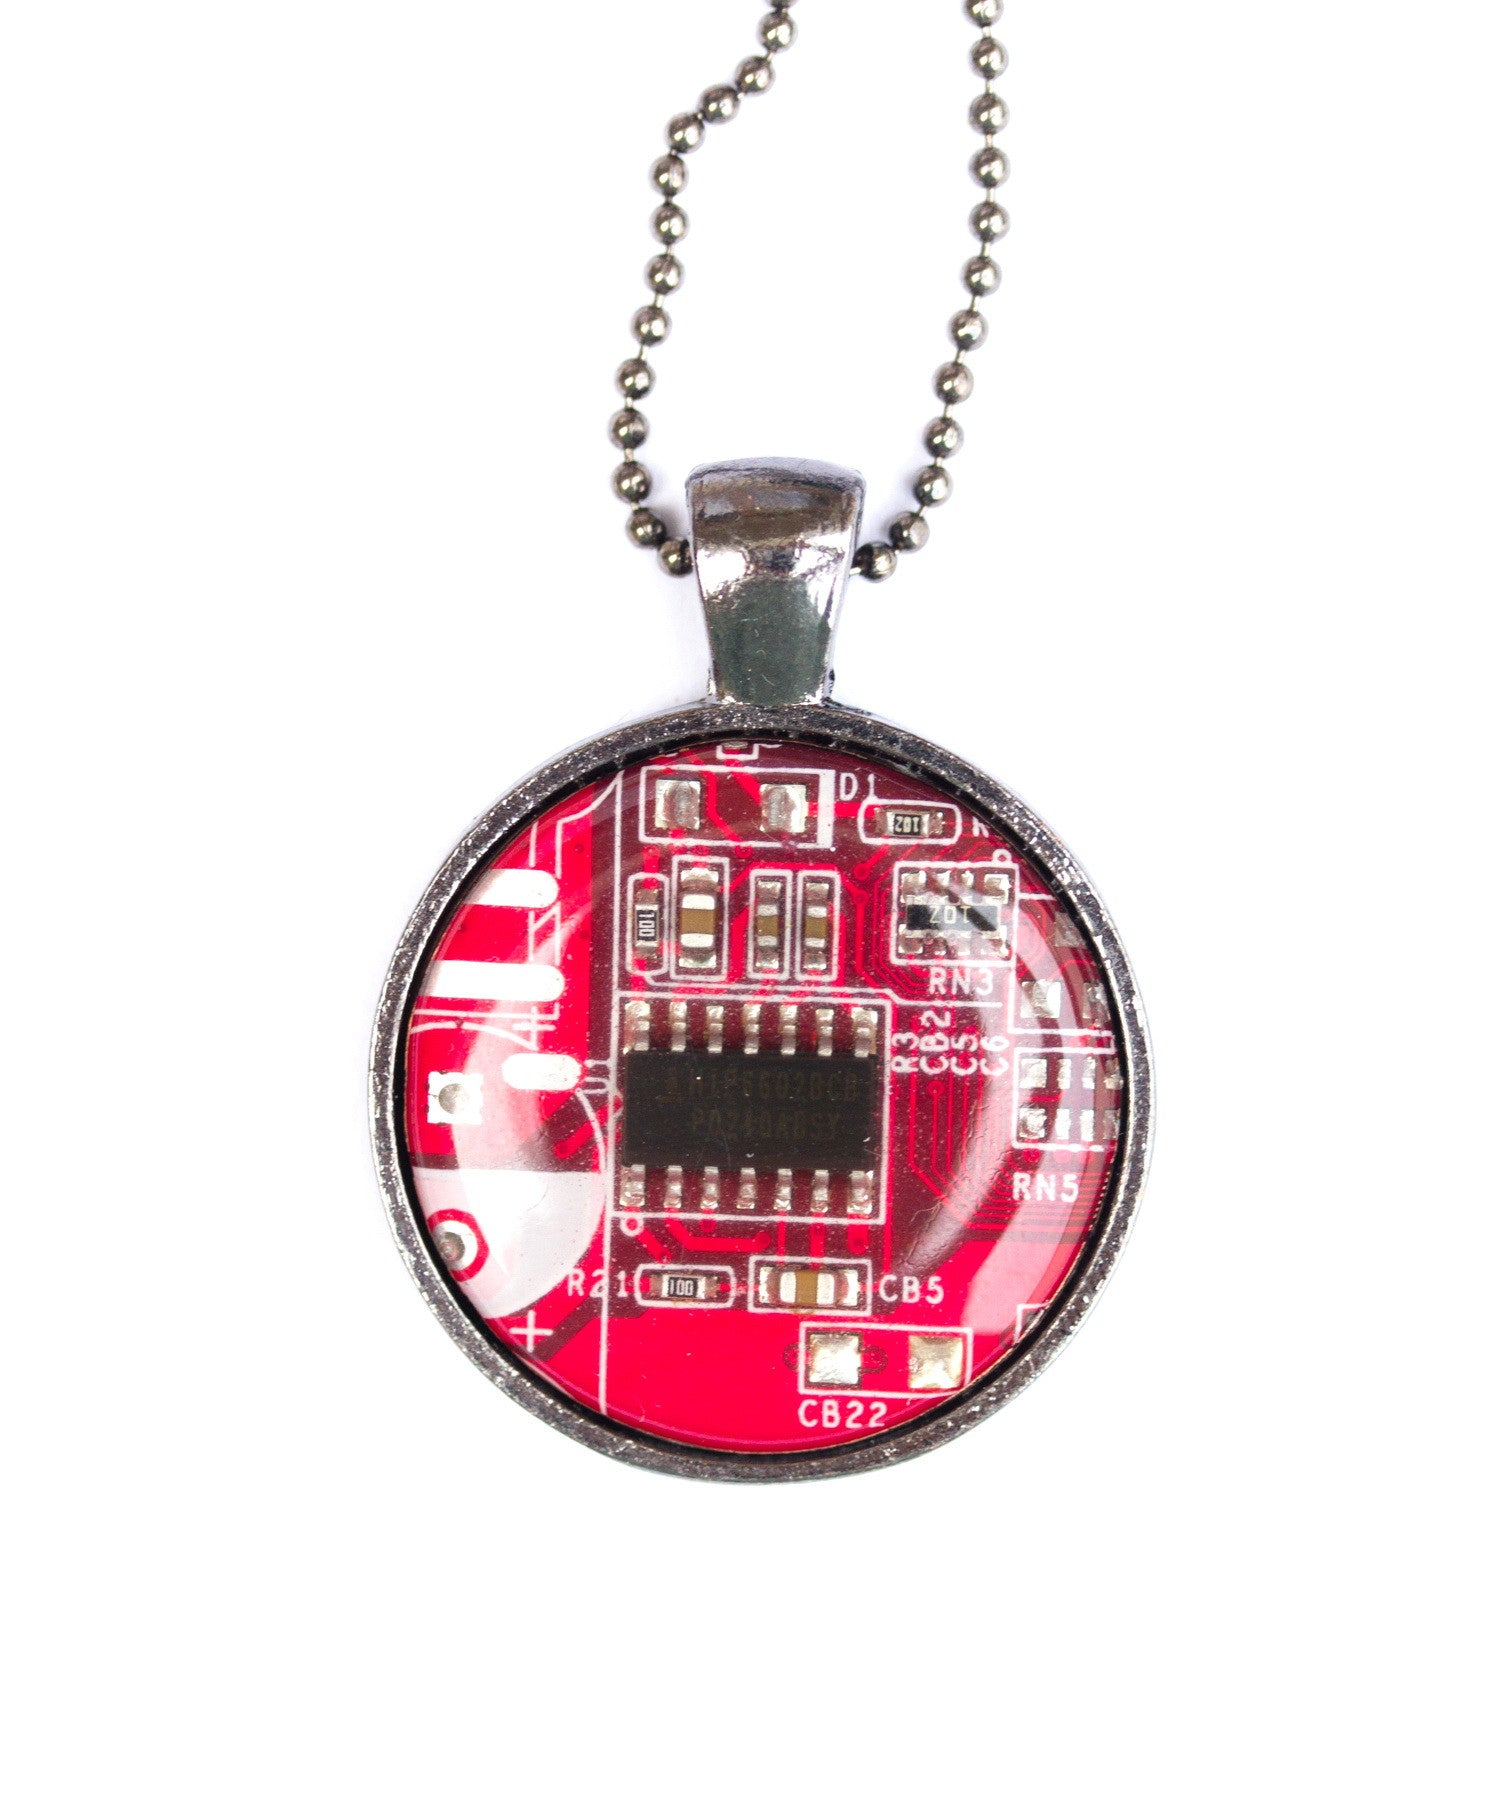 Circuit board necklace, round